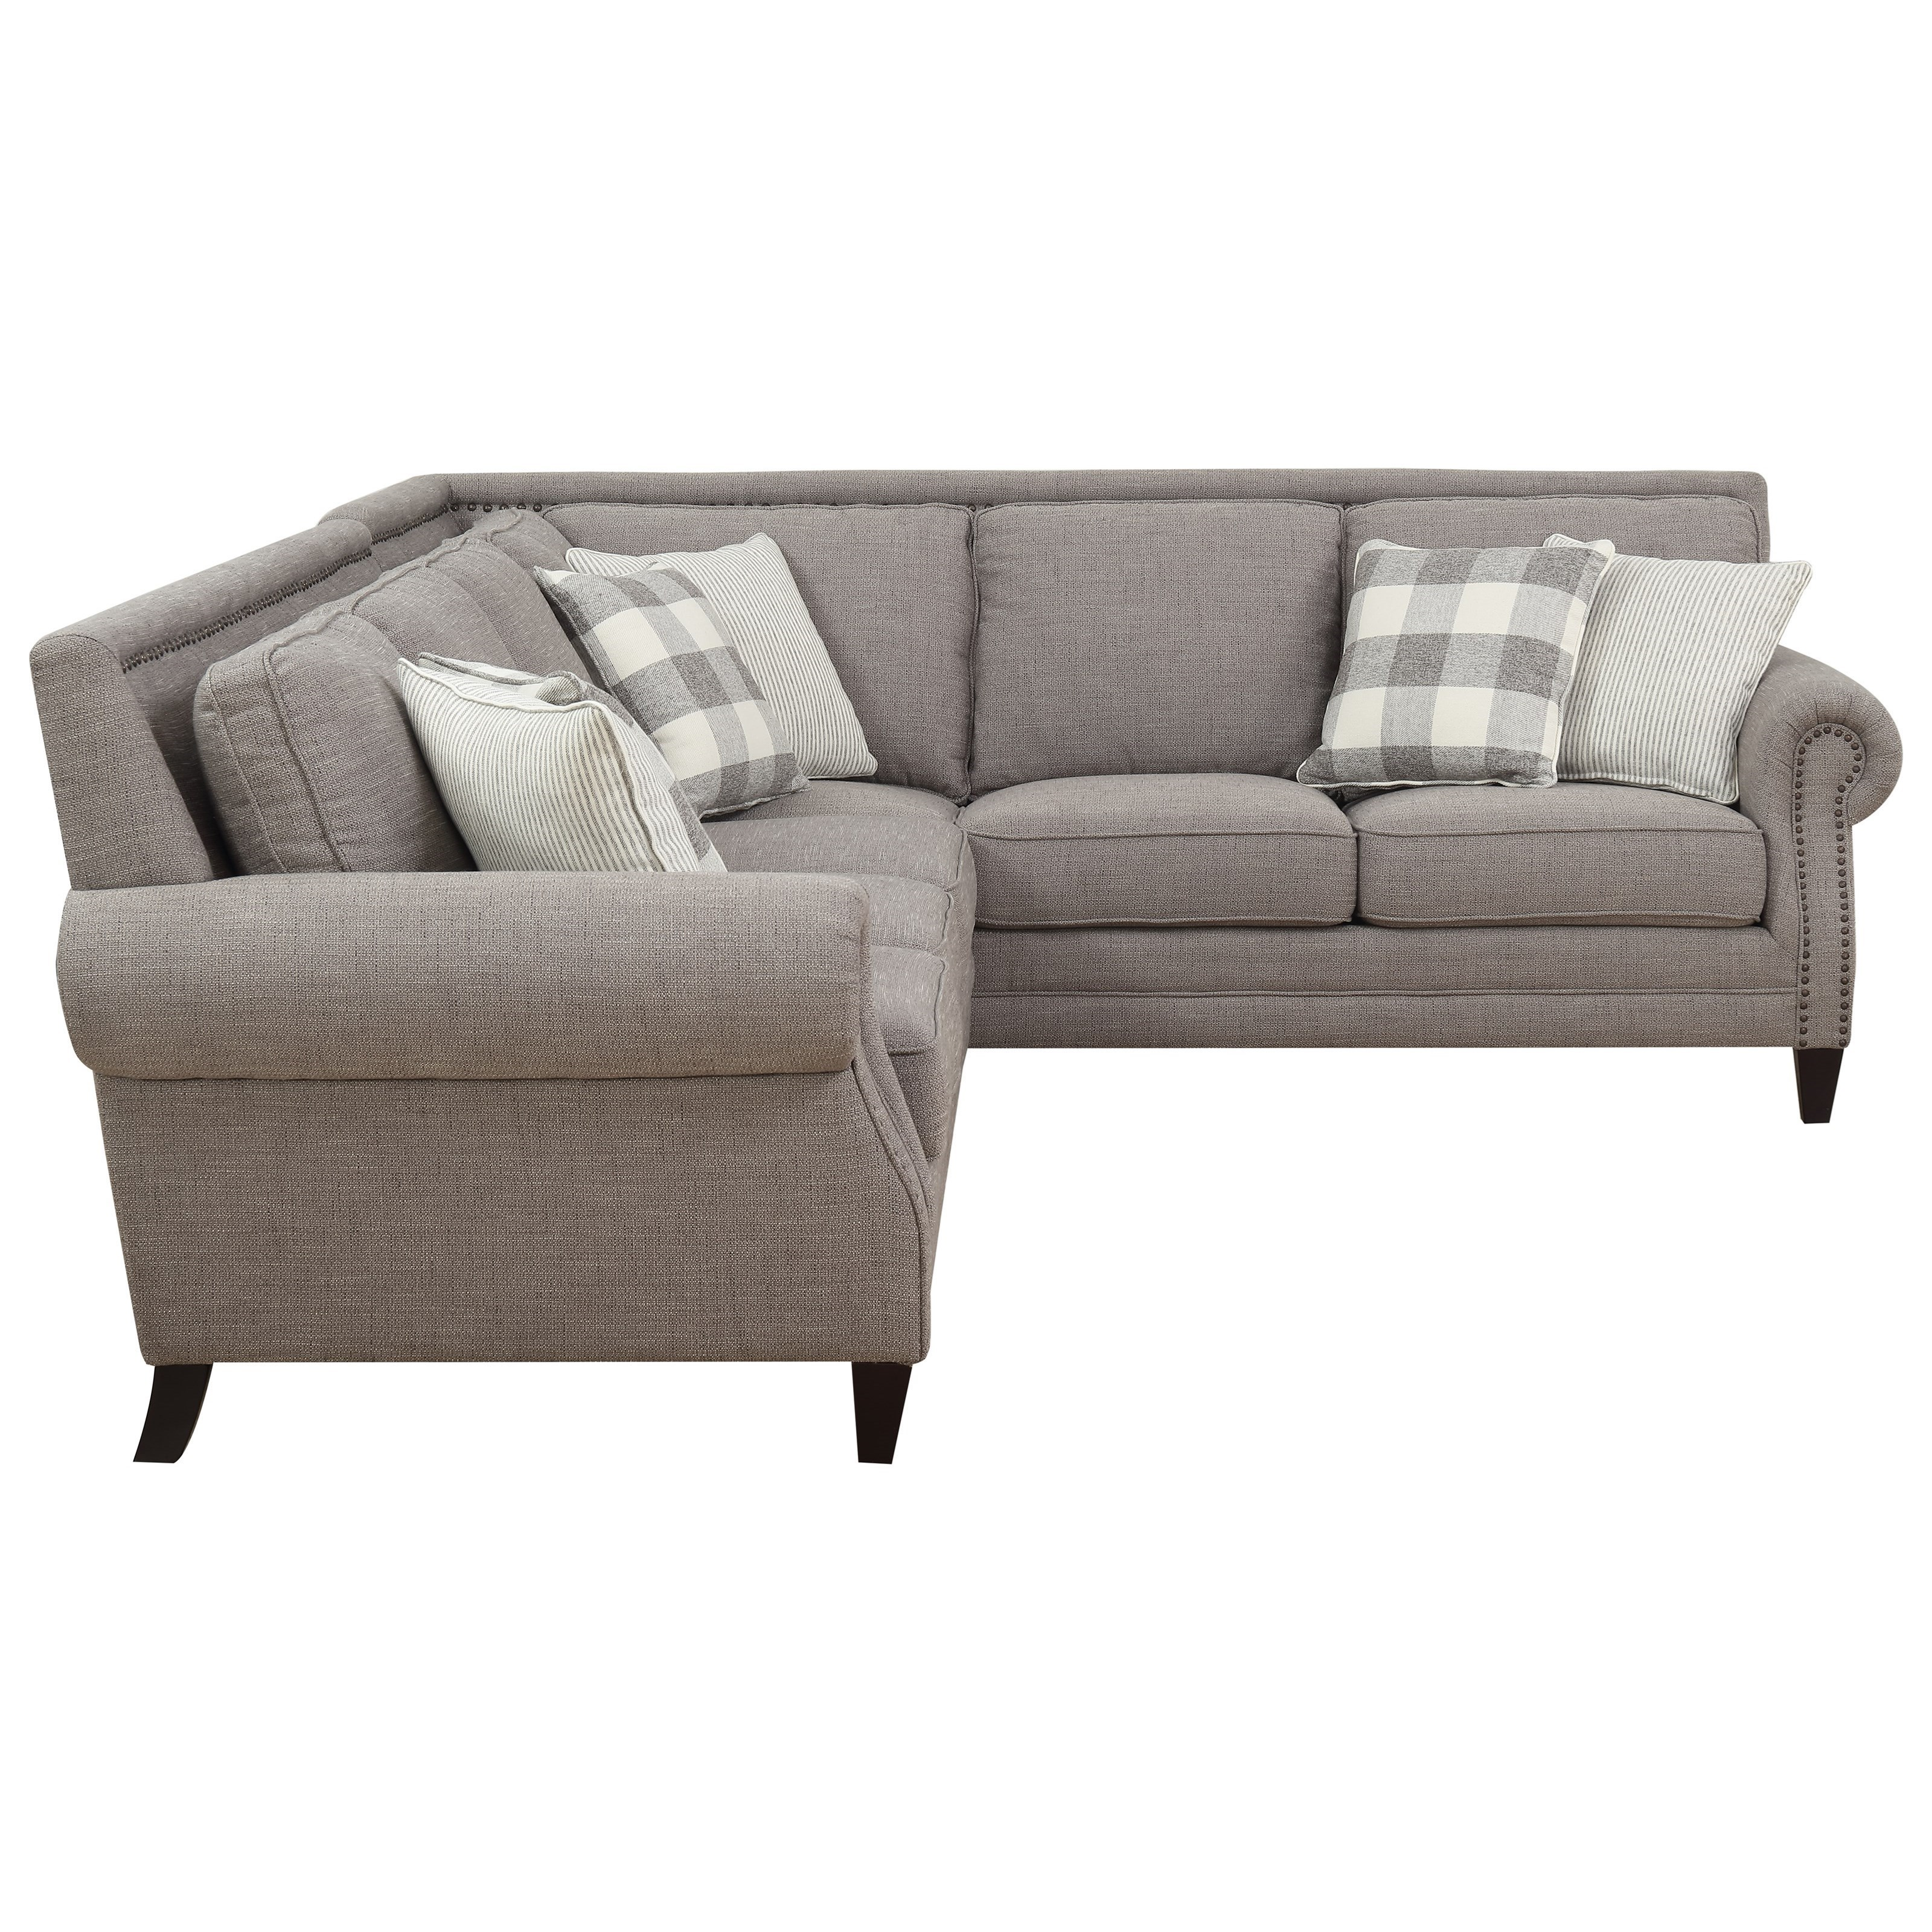 willow creek 2 piece sectional sofa